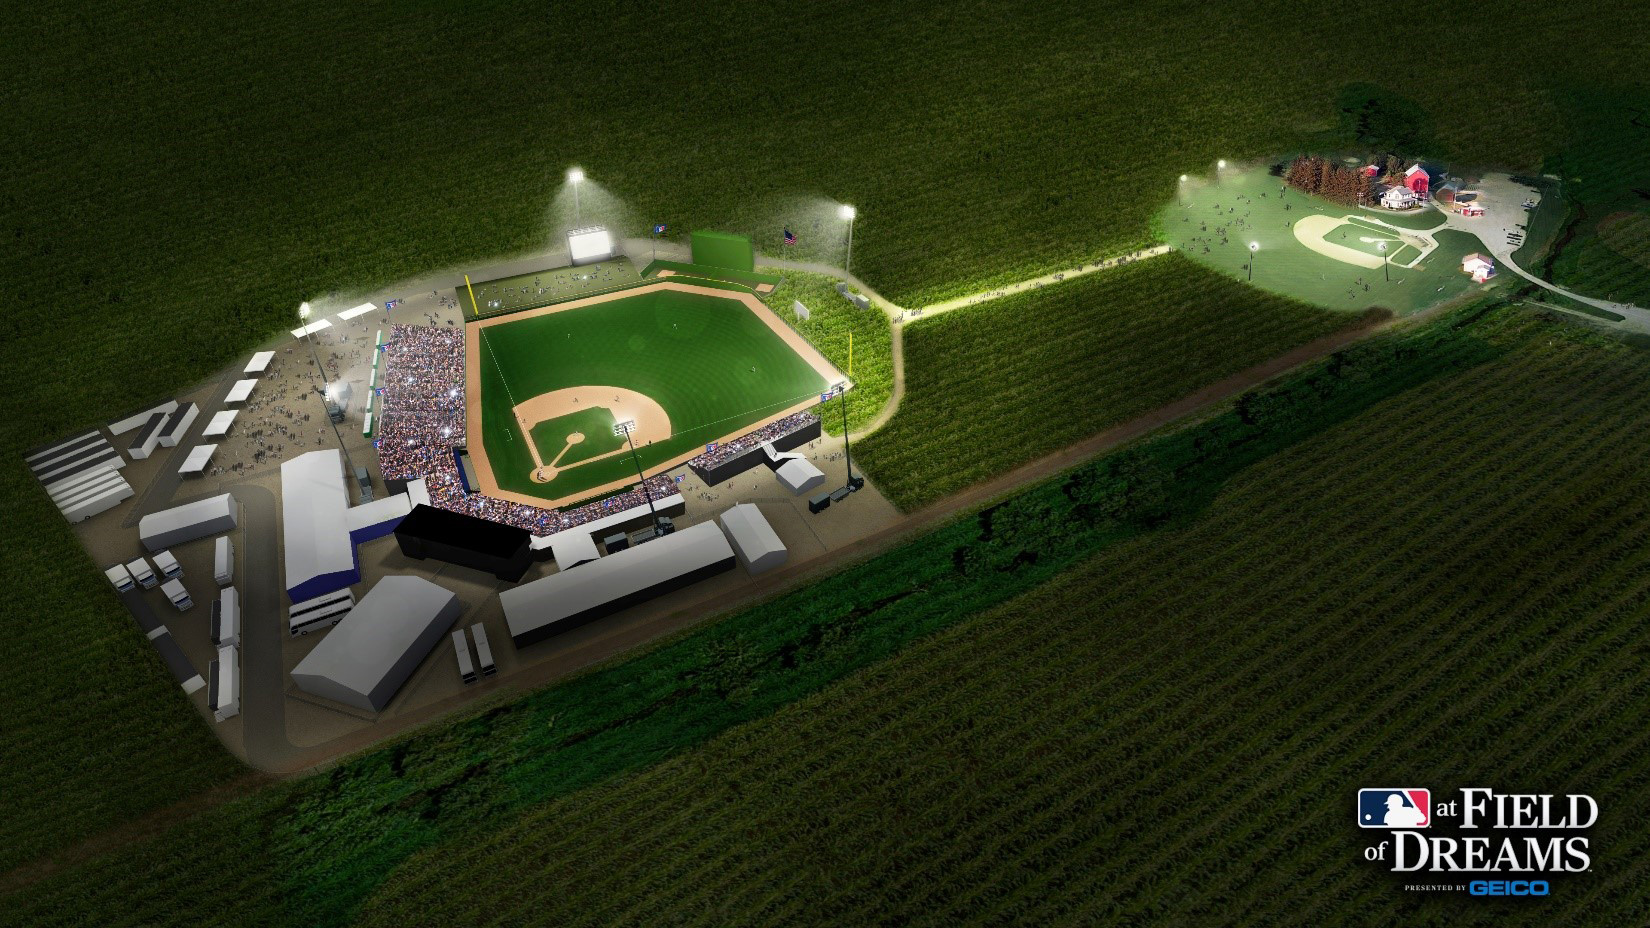 The Chicago White Sox and the New York Yankees will play a regular season game in Dyersville, Iowa at the site of the beloved 1989 baseball movie, Field of Dreams